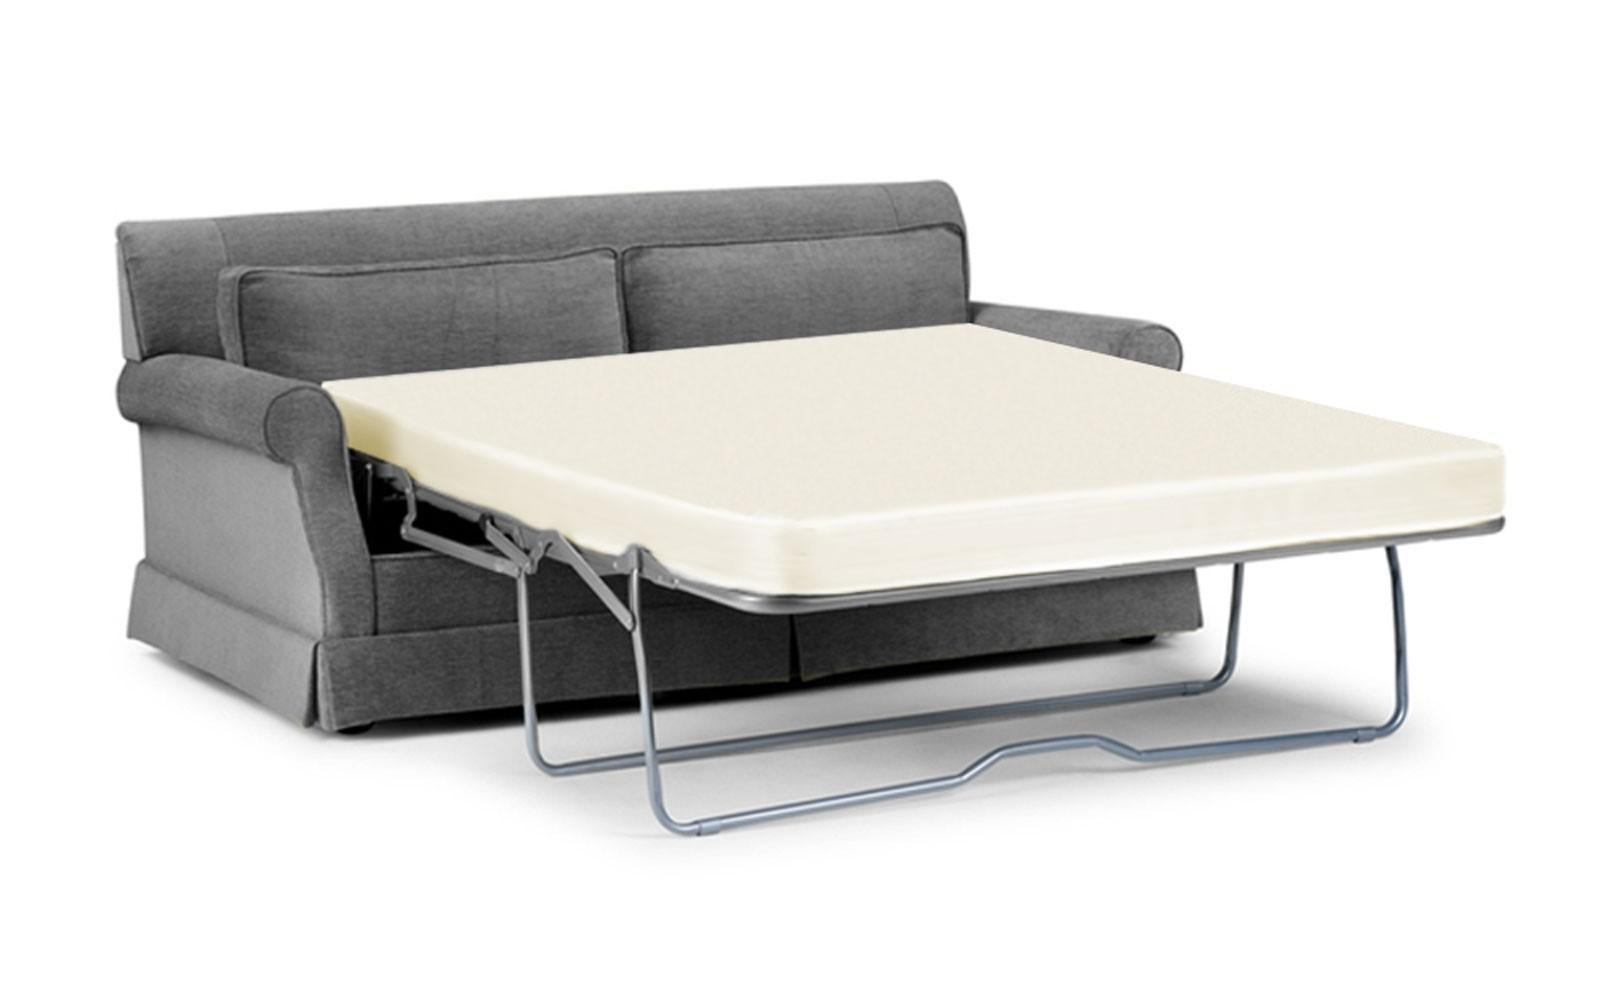 Sofa Bed Memory Foam Pertaining To Sofas Mattress (Image 14 of 20)